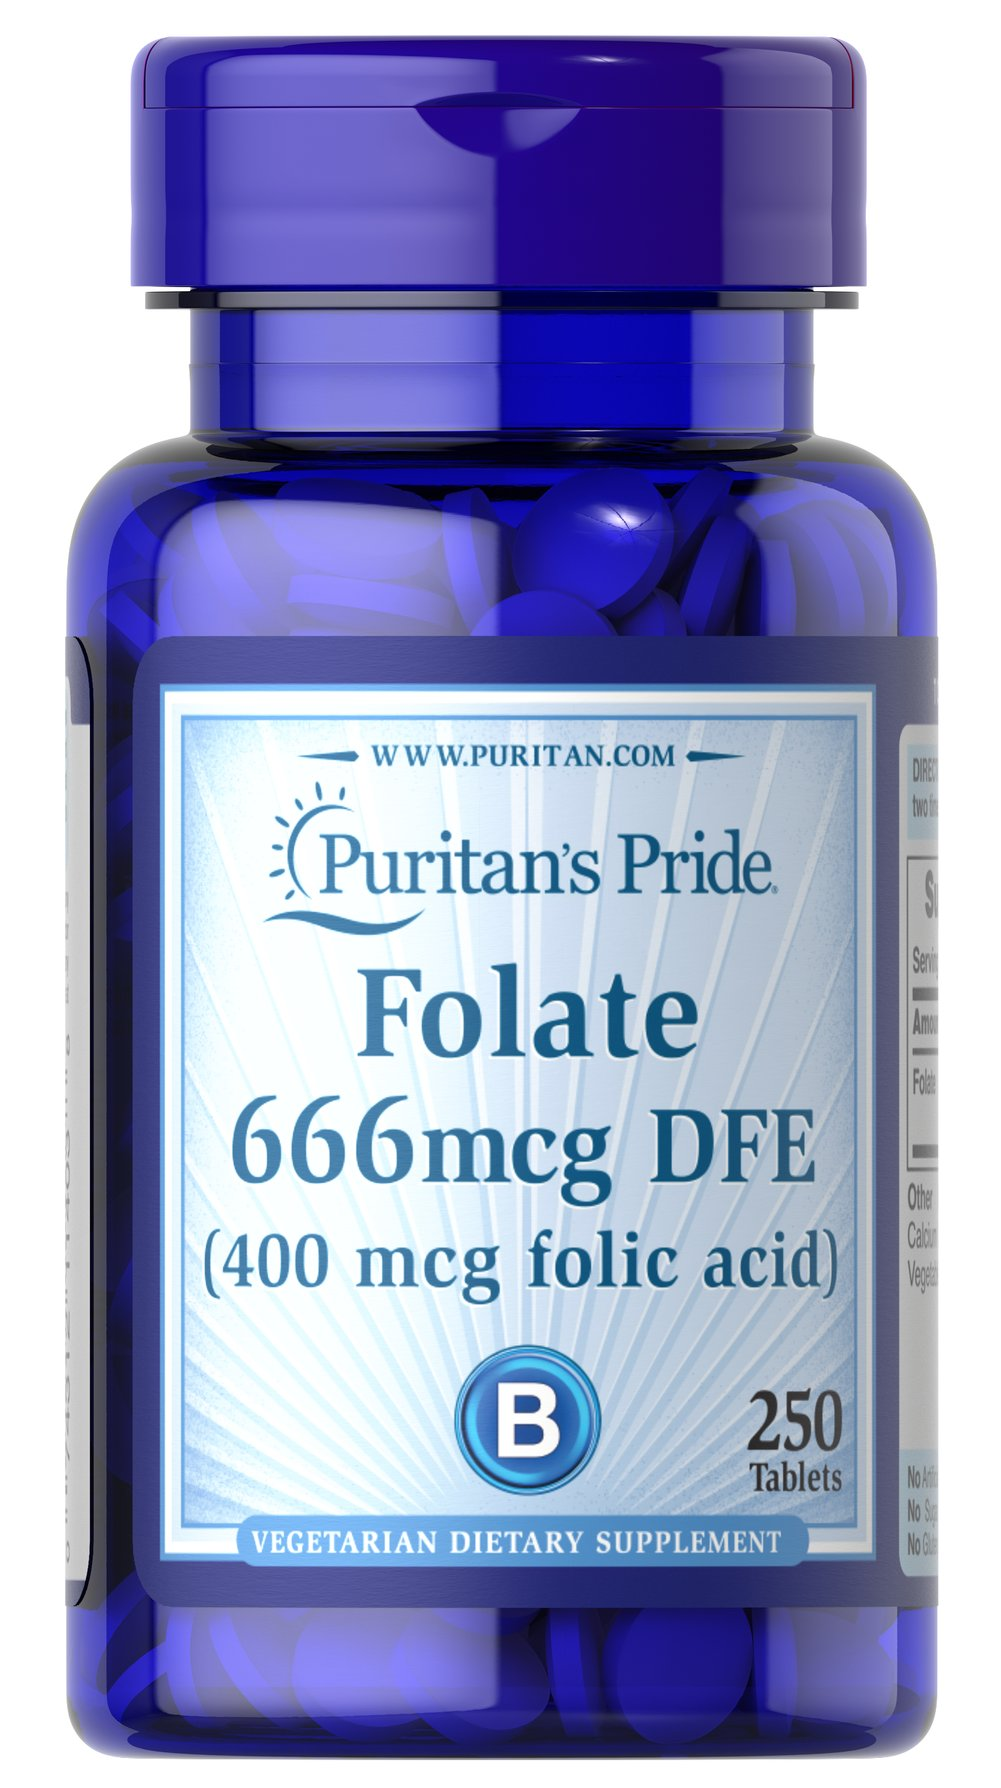 Folate 666mcg DFE (Folic Acid 400 mcg)